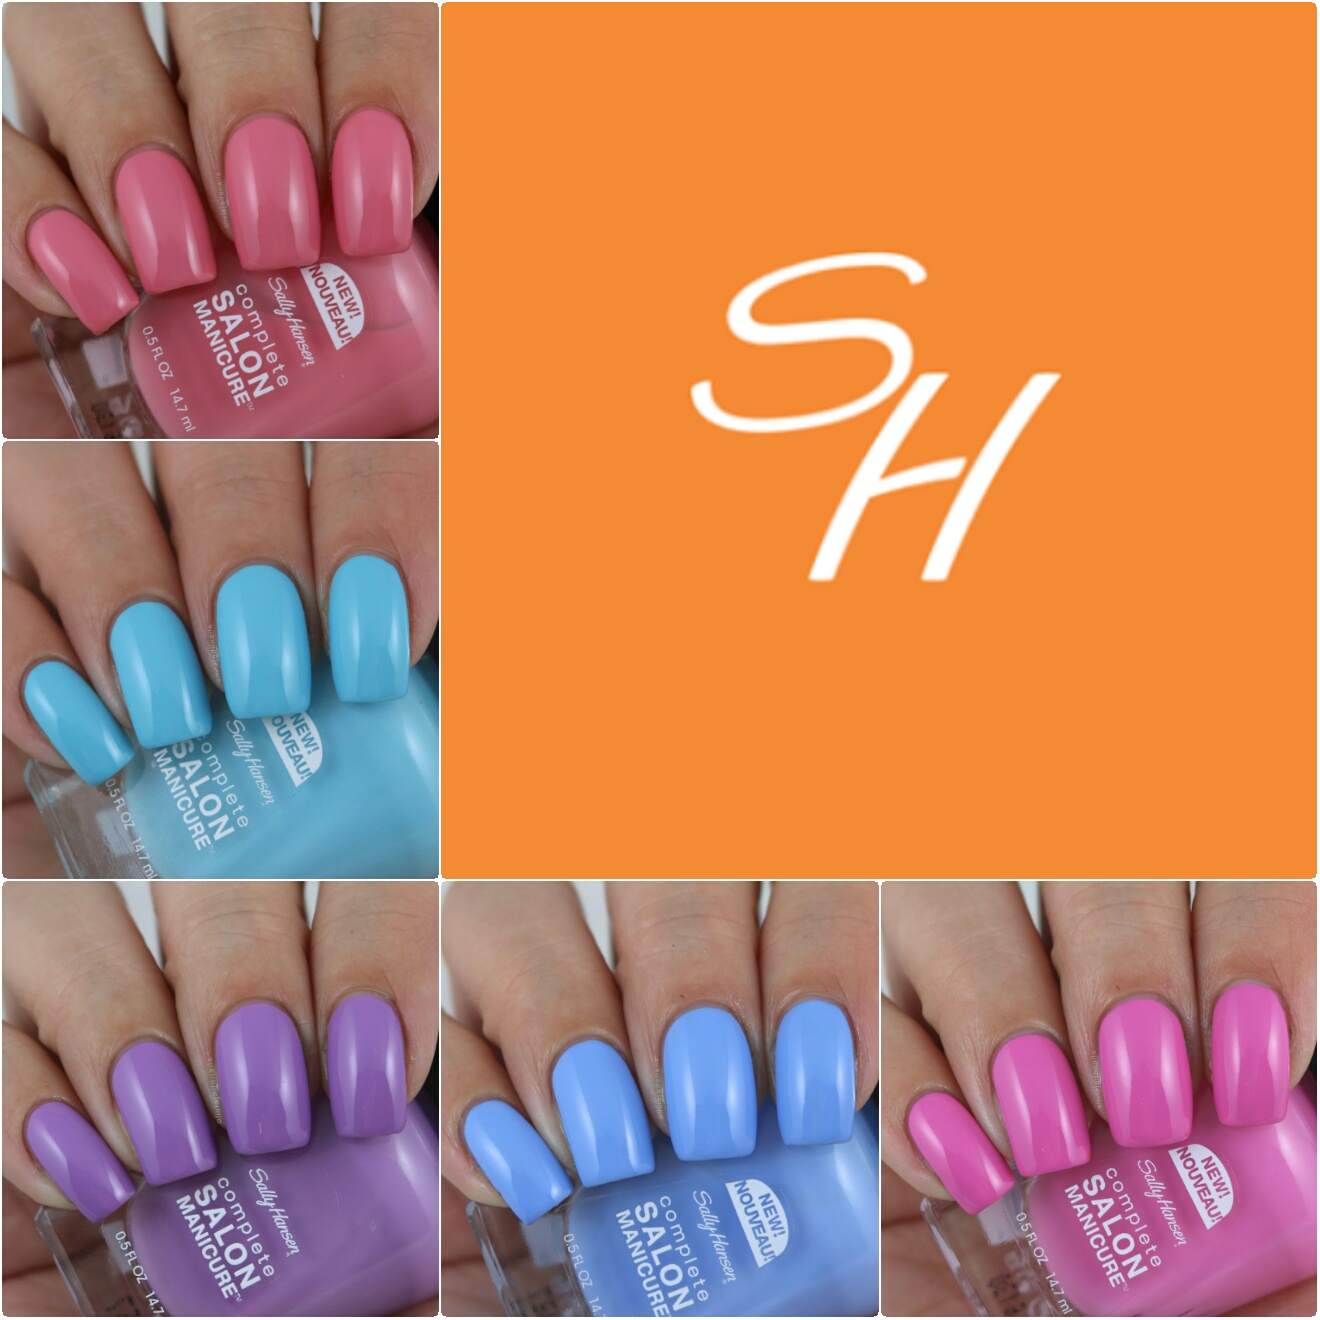 Olivia jade nails sally hansen complete salon manicure for Salon complet but